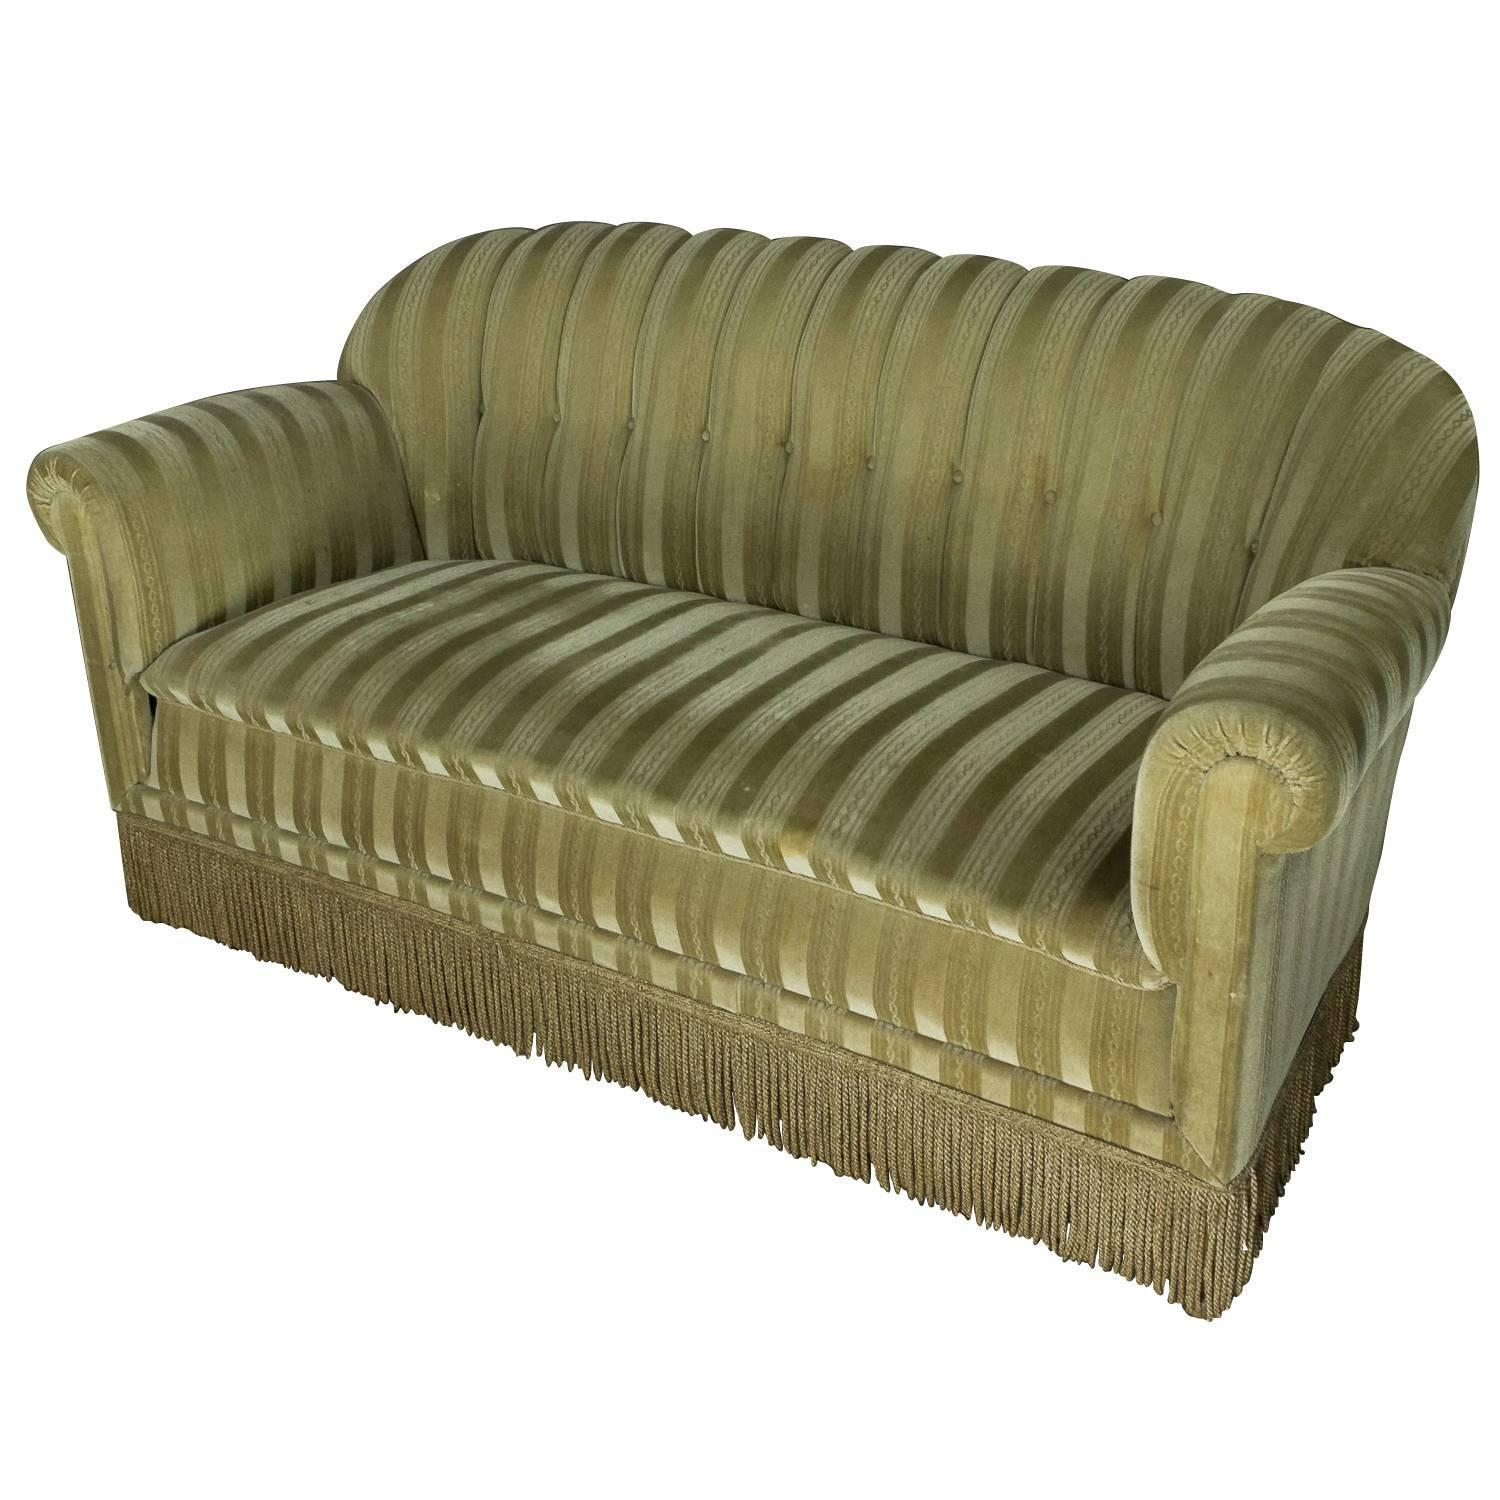 1930S Mohair Sofa At 1Stdibs within 1930S Sofas